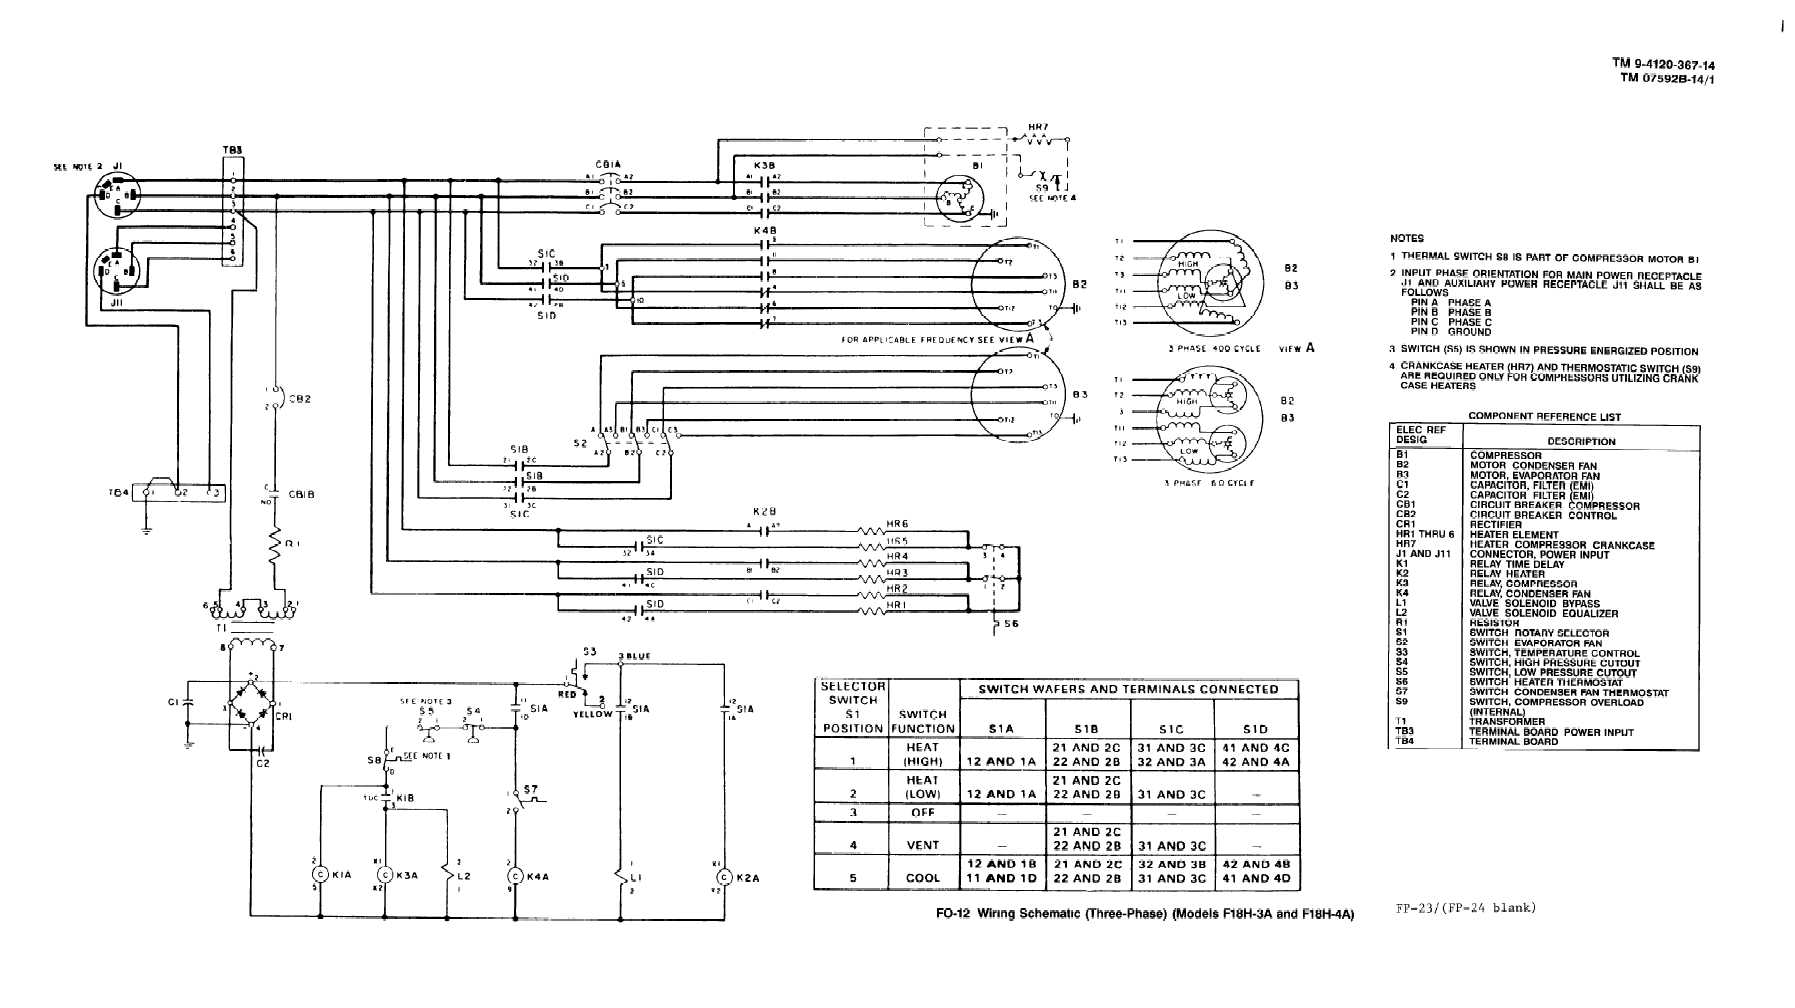 TM 9 4120 367 14_342_1 fo 11 wiring schematic (three phase) (model f18h 3a and f18h 4a) 3 phase wiring schematic at gsmportal.co